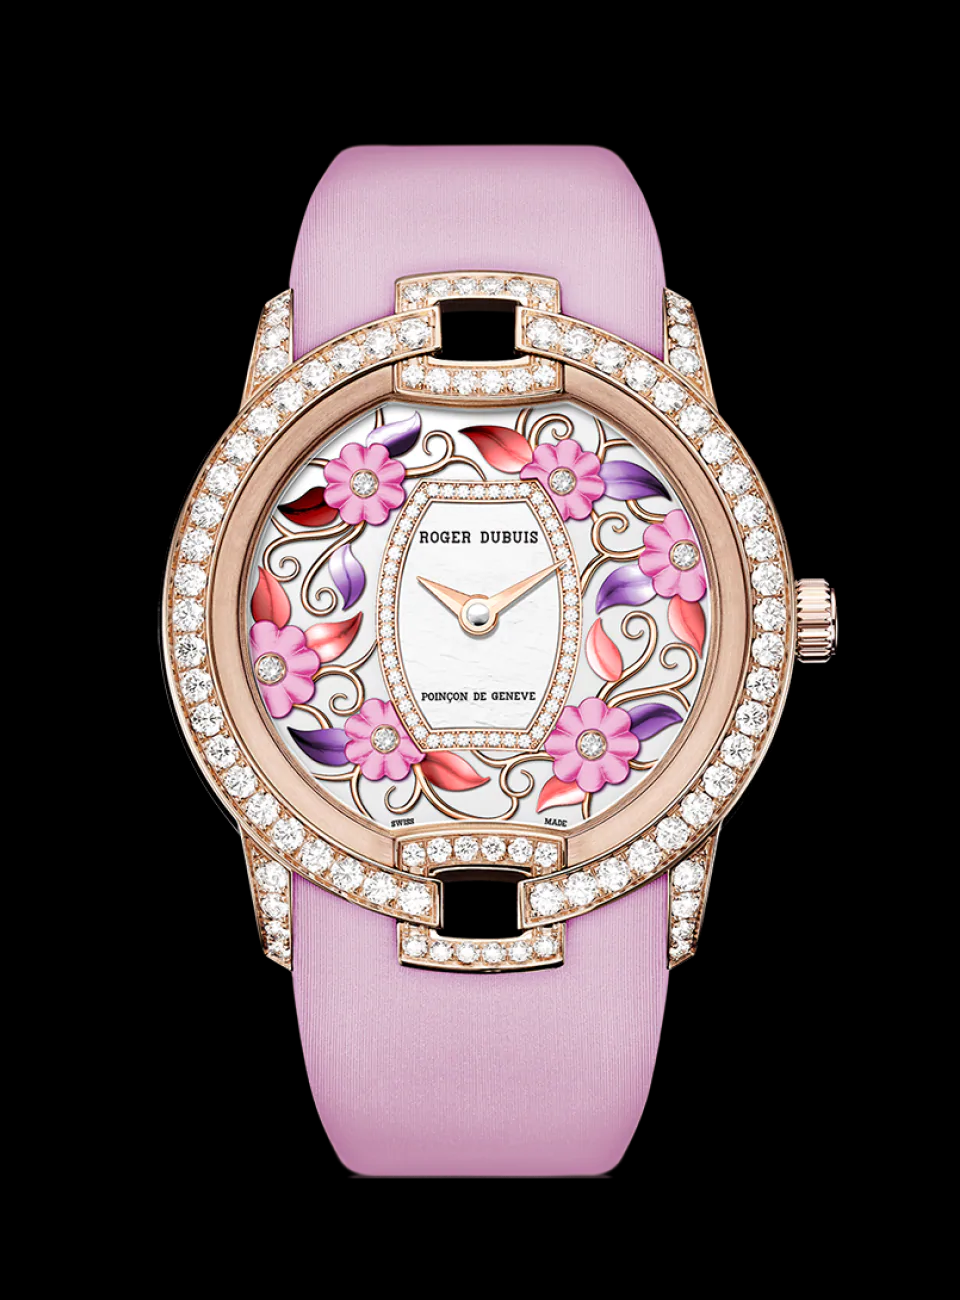 BEST WOMEN'S Bling WATCHES 2021 Roger Dubuis Round Gold Dial with Rhinestones and Flower Inspired Design with Pink Strap